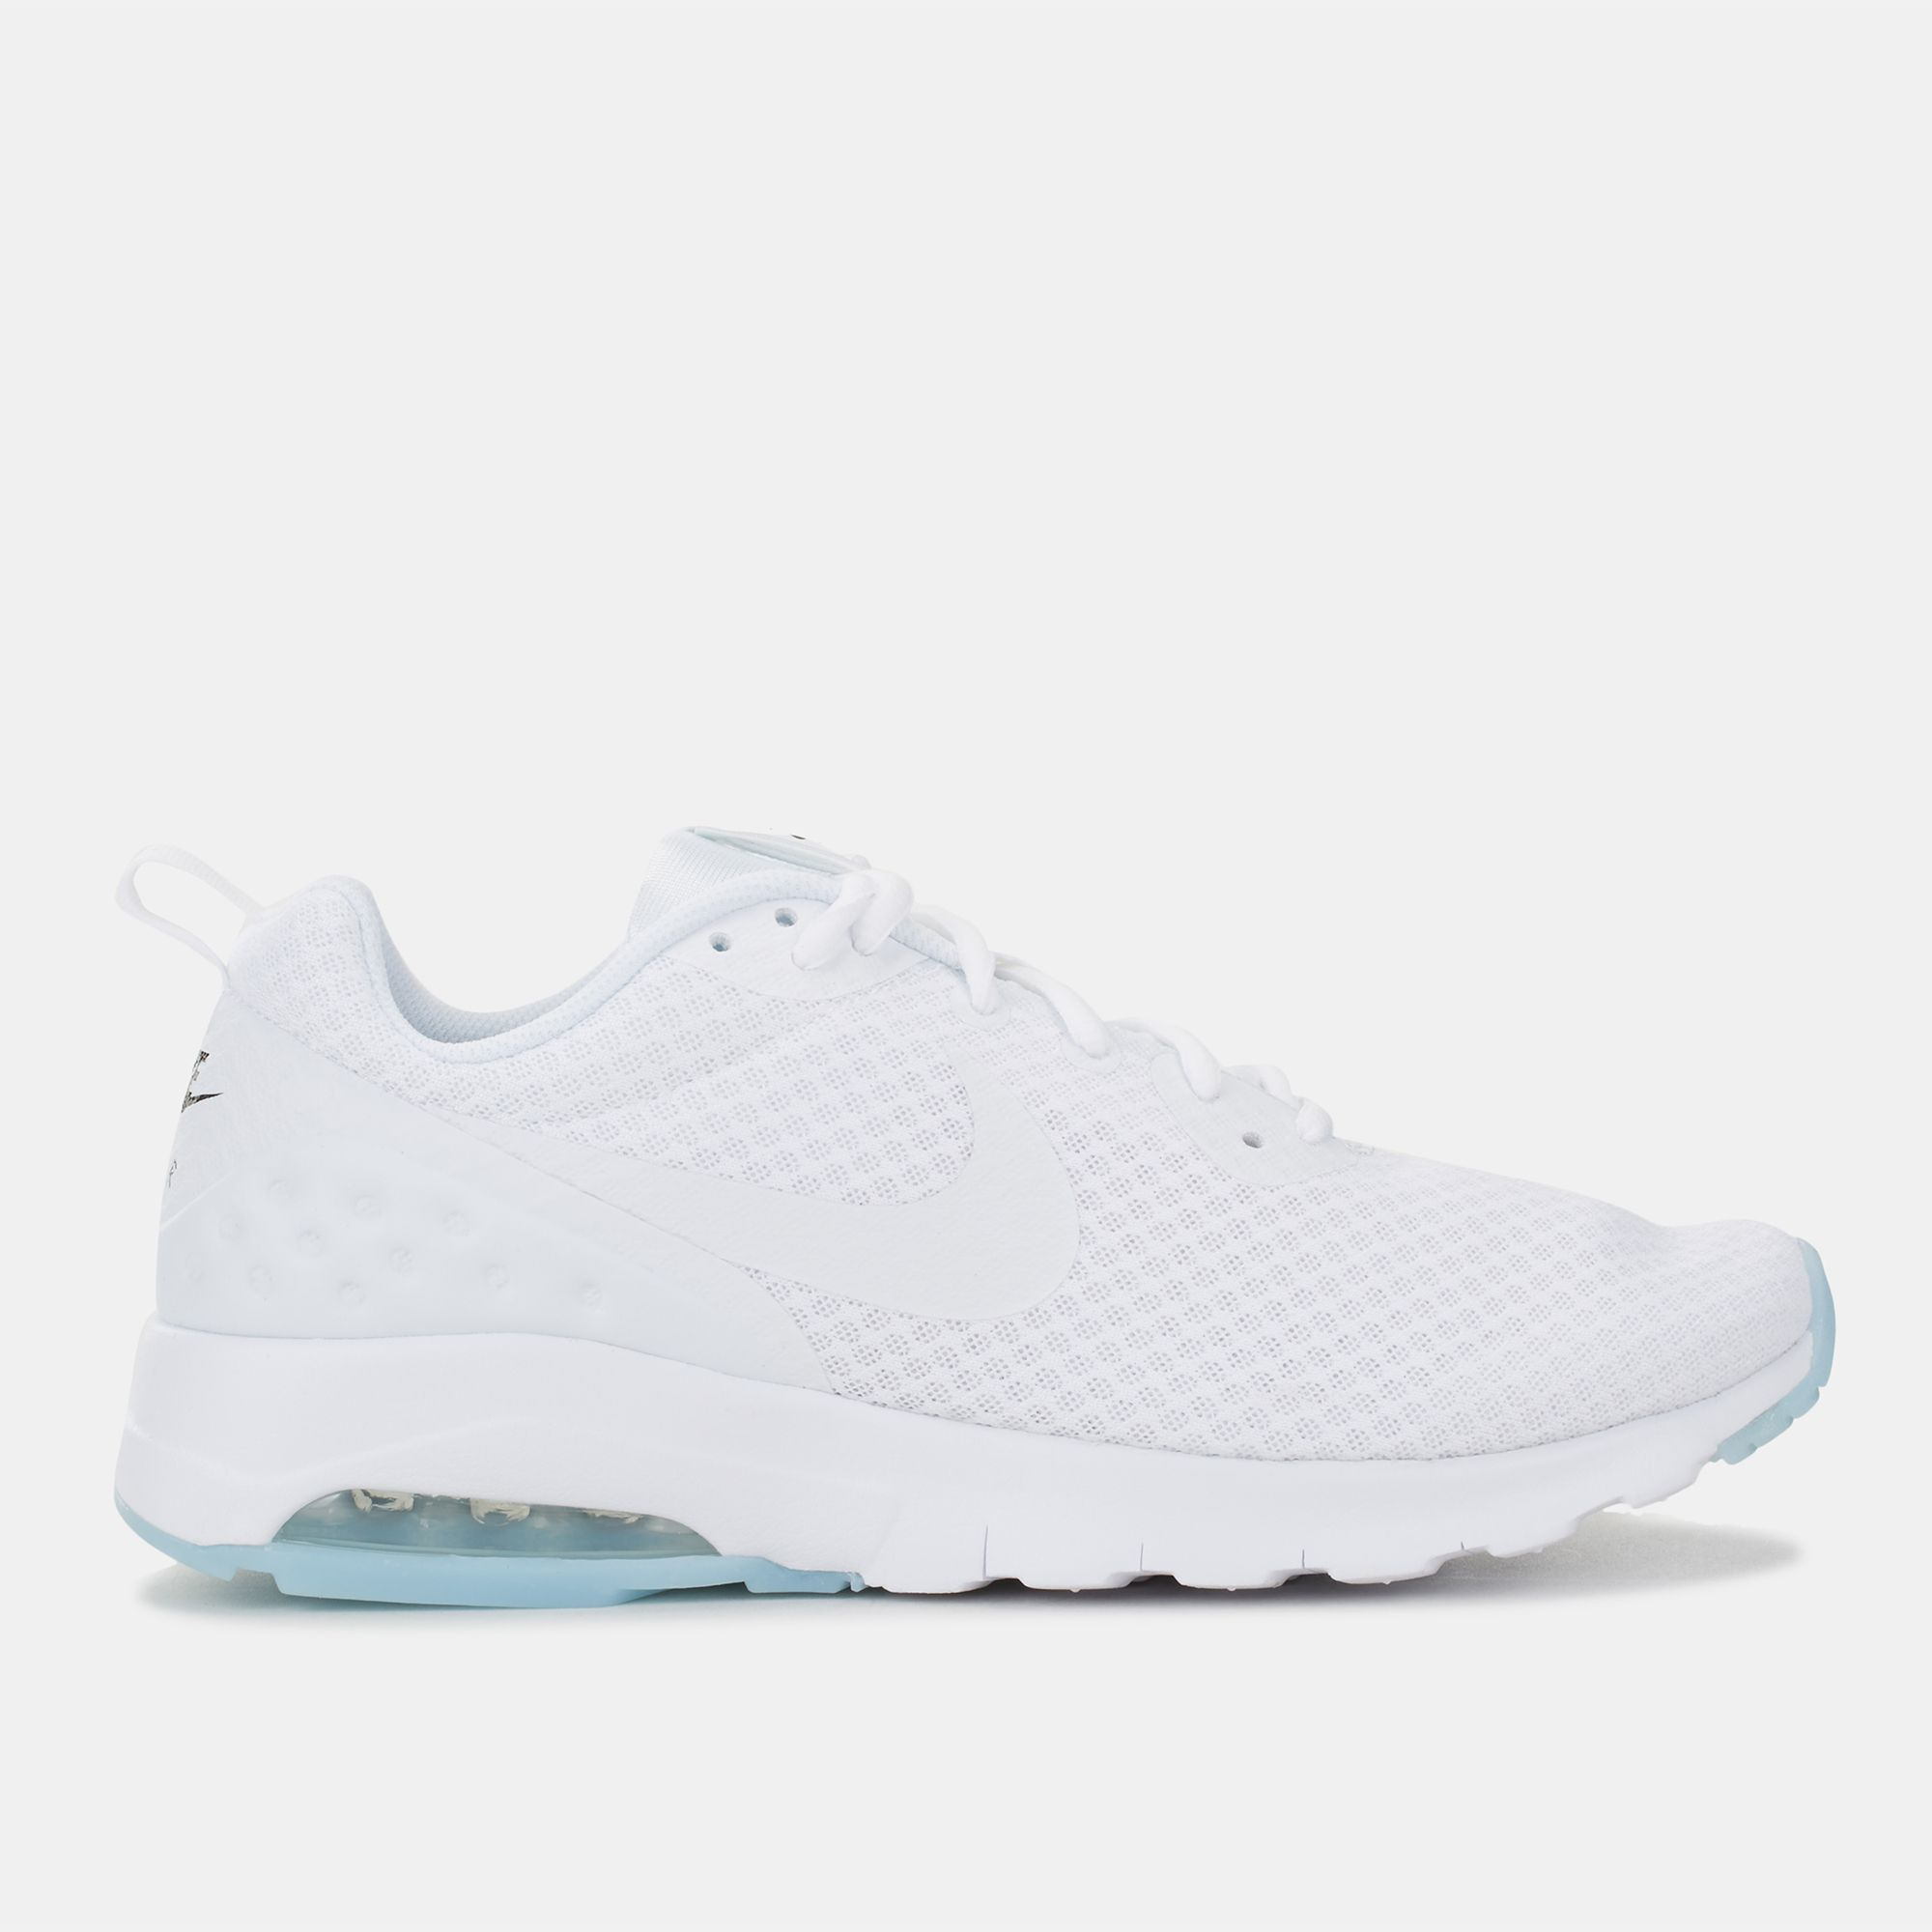 Shop White Nike Air Max Motion LW SE Shoe for Mens by Nike SSS